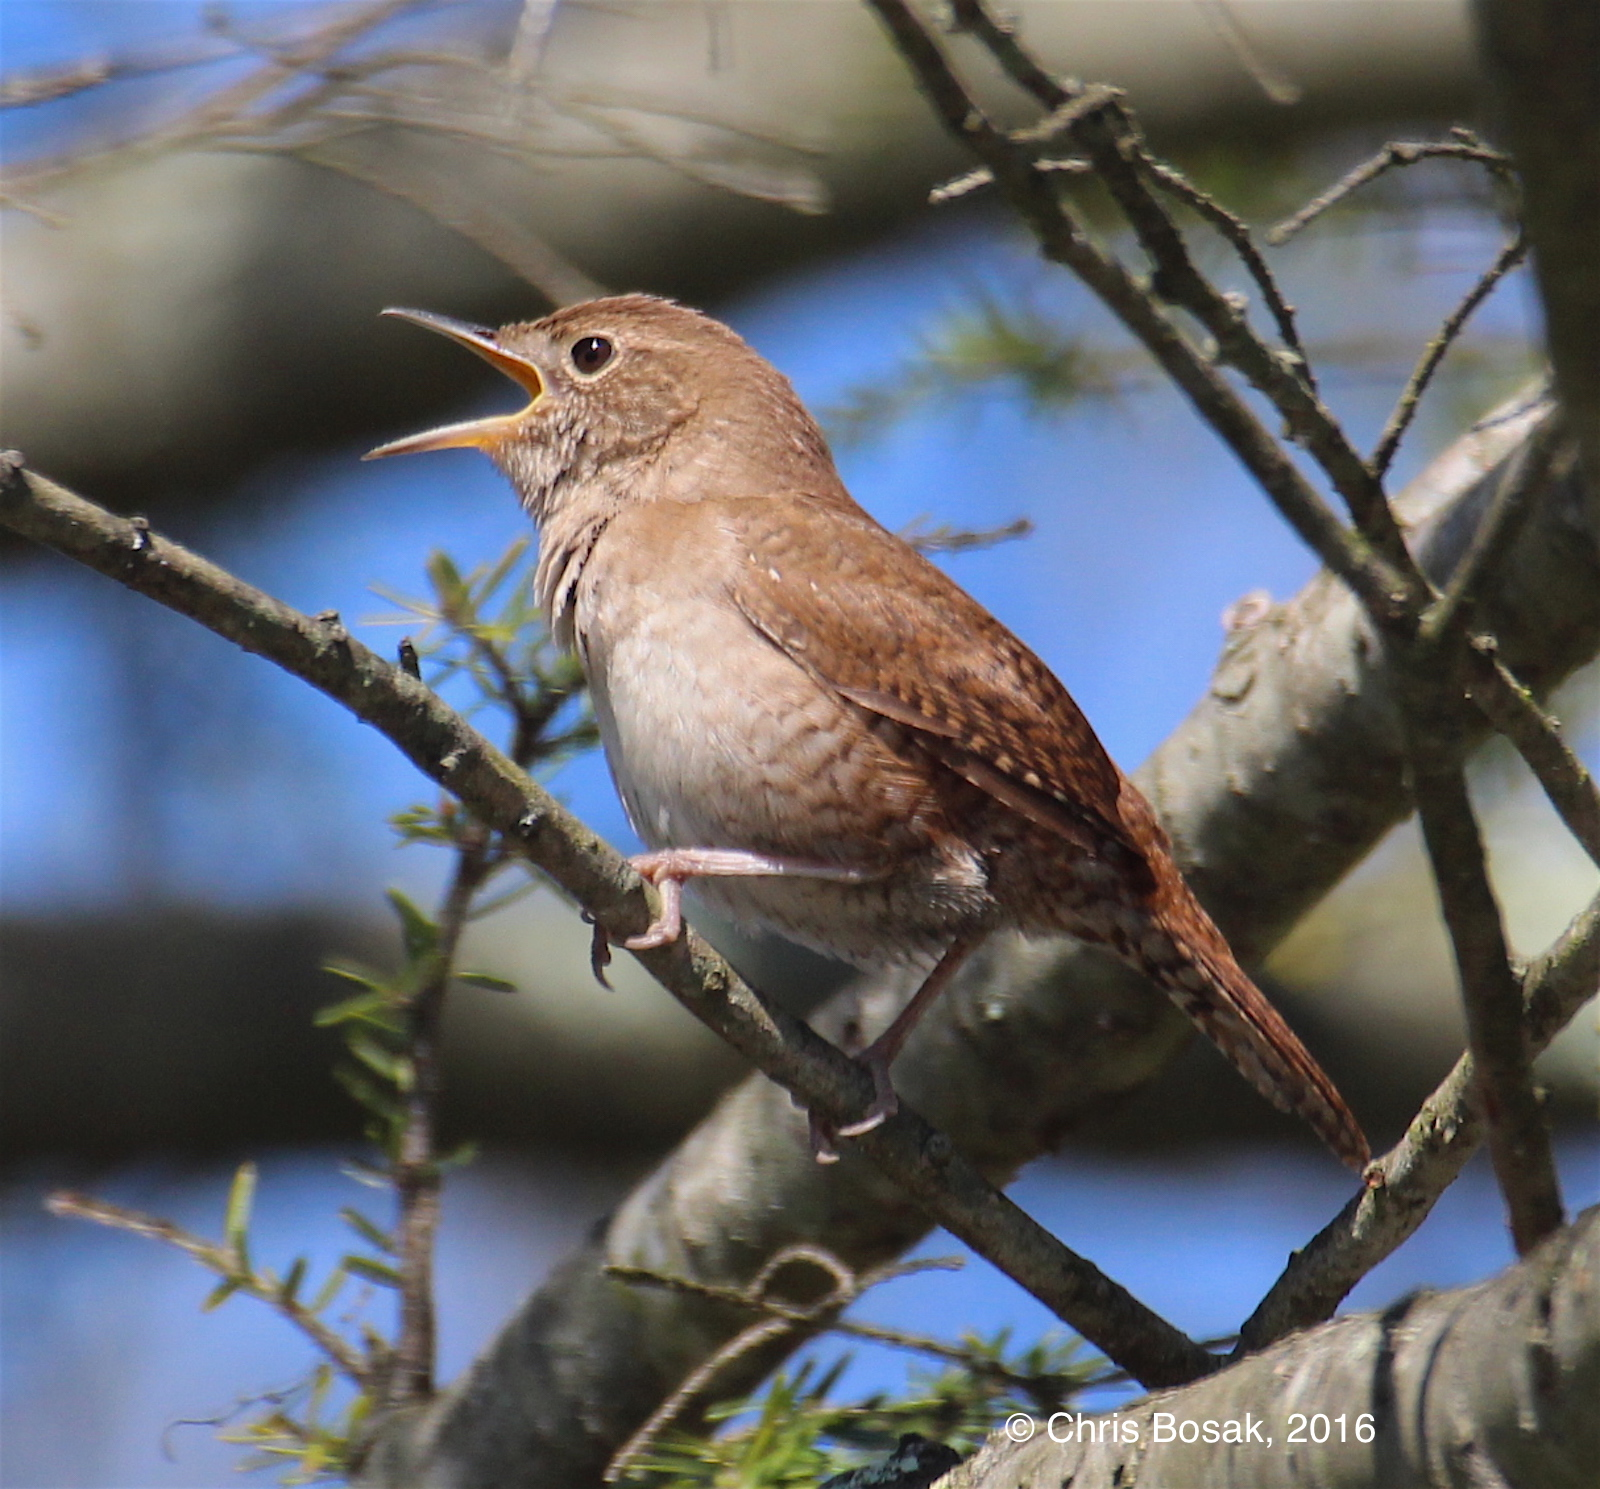 A House Wren sings in a tree during the nesting season 2016.